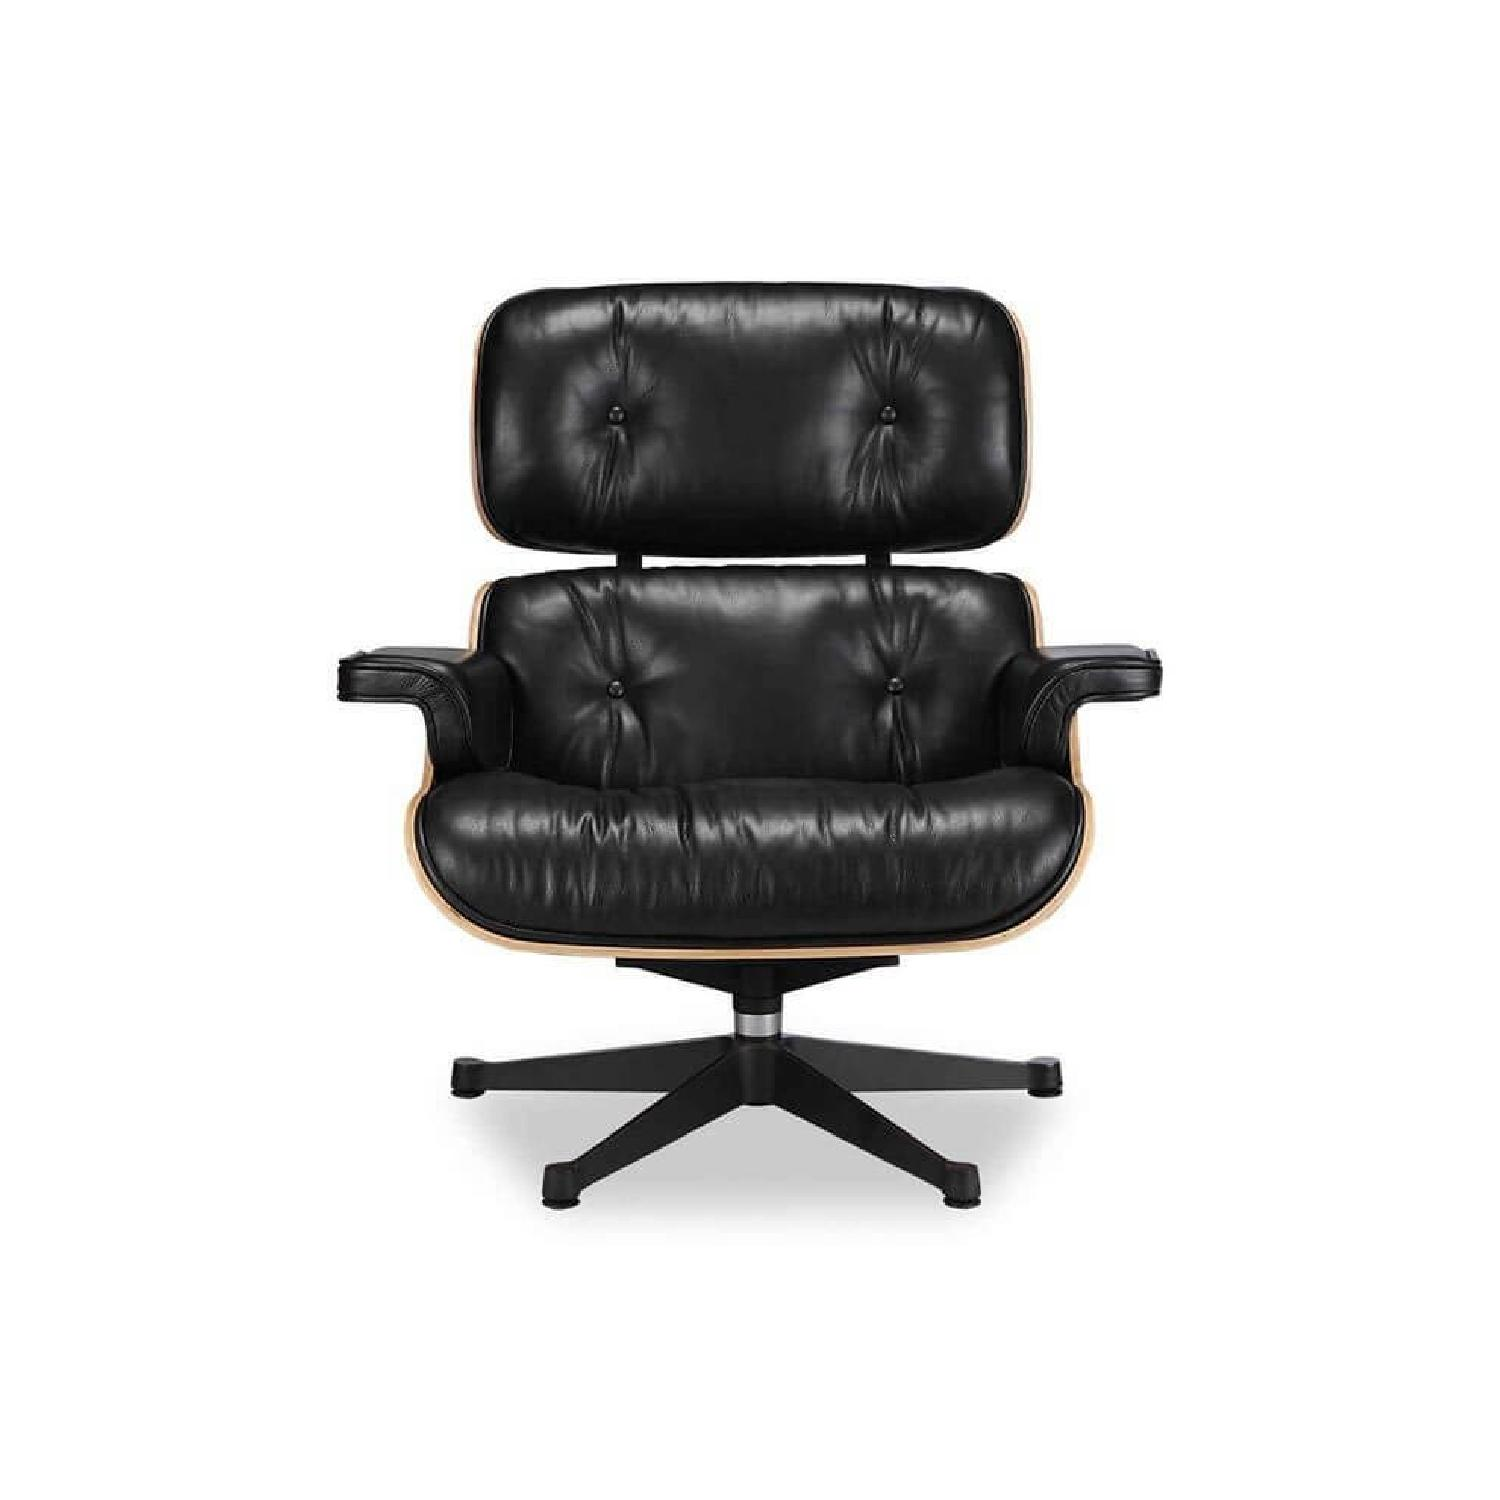 Vitra Eames Lounge Chair Black Eames Lounge Chair Replica Ottoman In Black